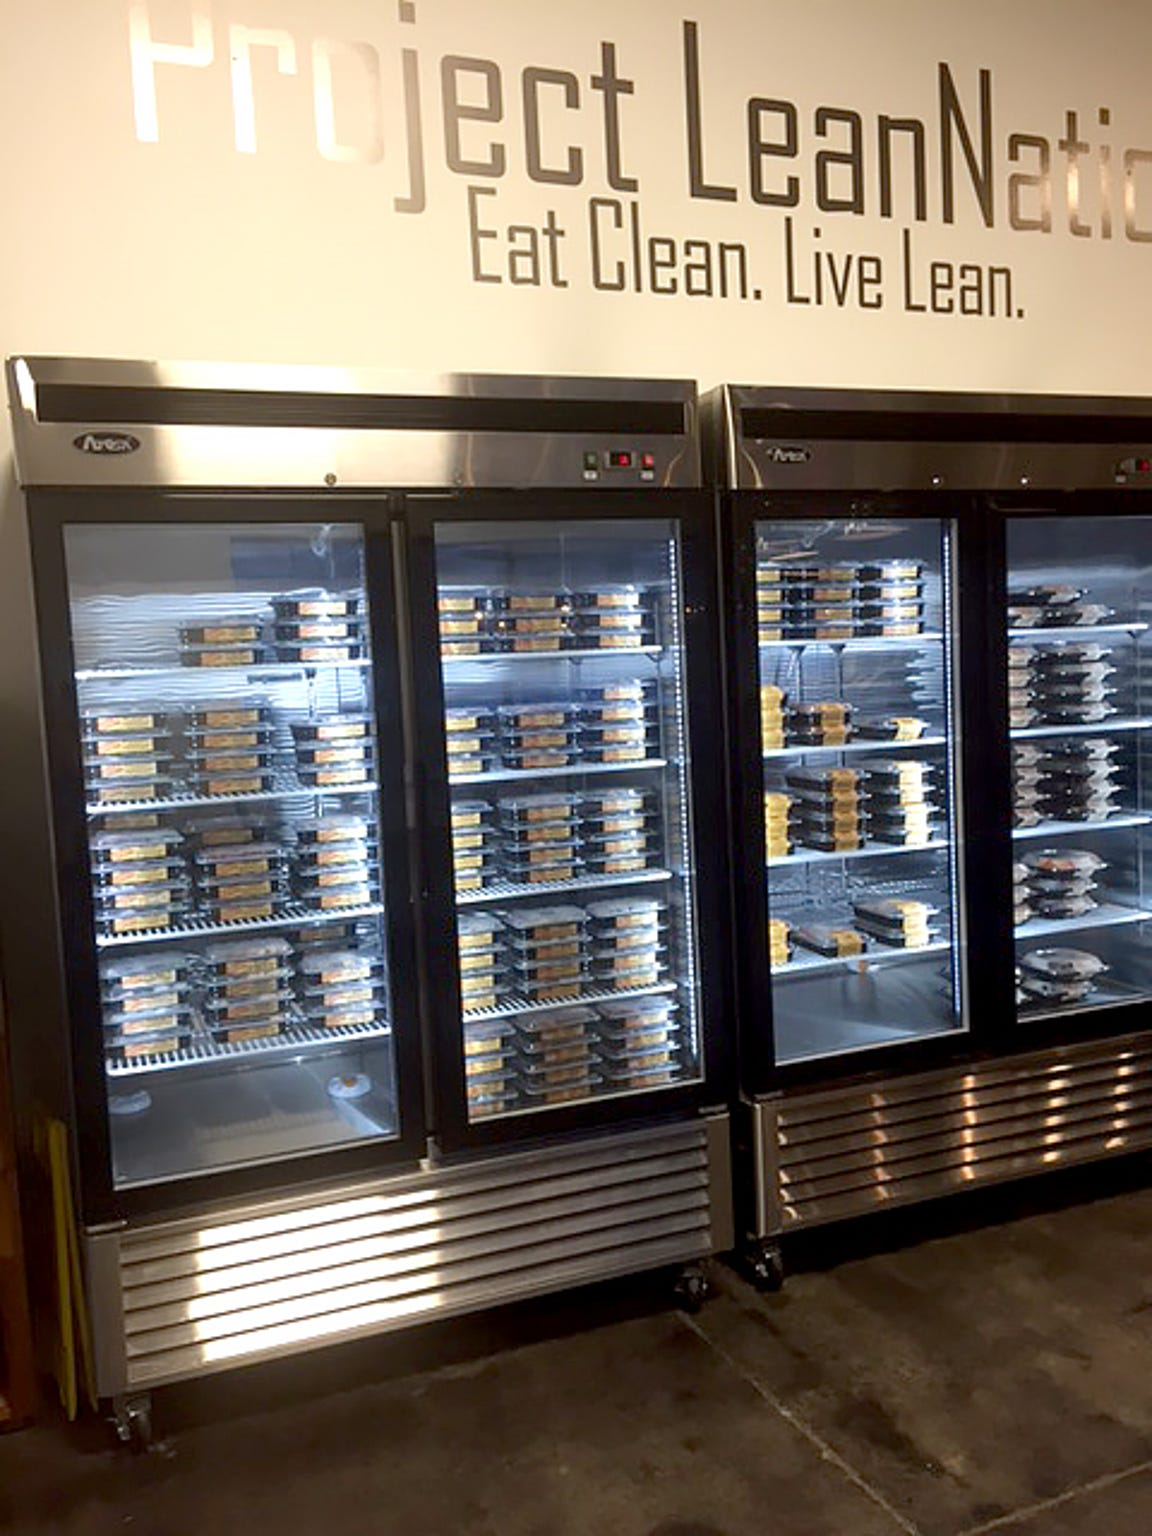 Grab-and-go meals from Project LeanNation.